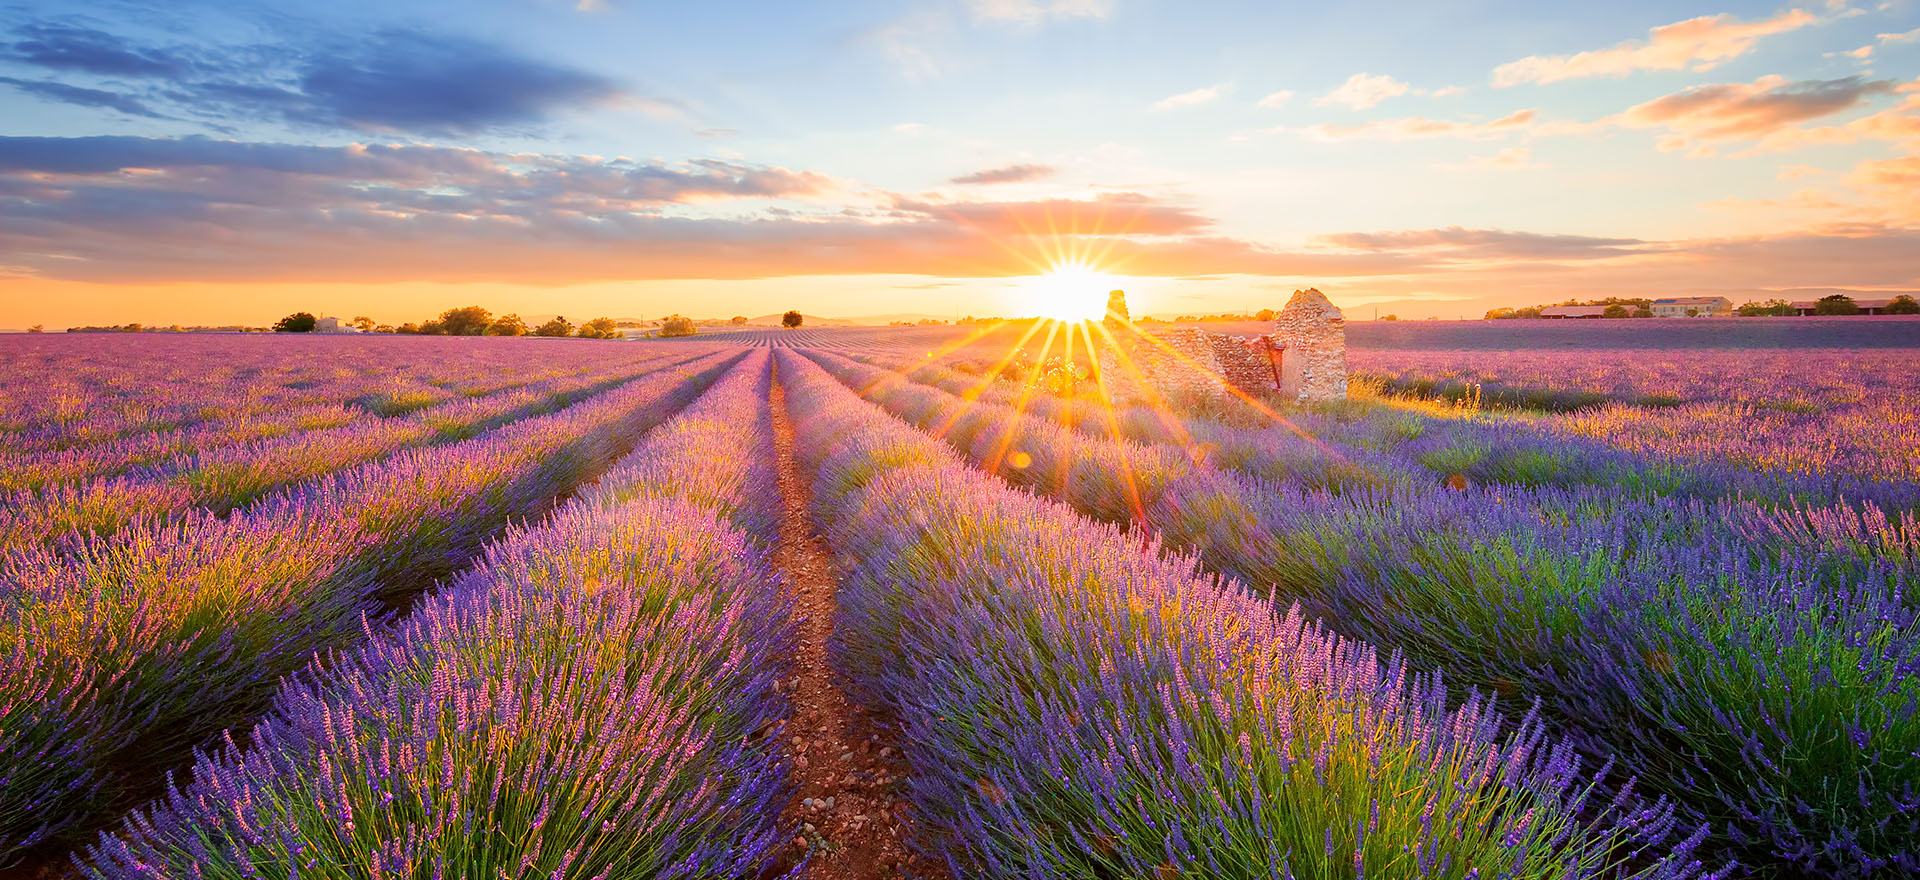 Sunset Countryside View | lavender field | Provence | France